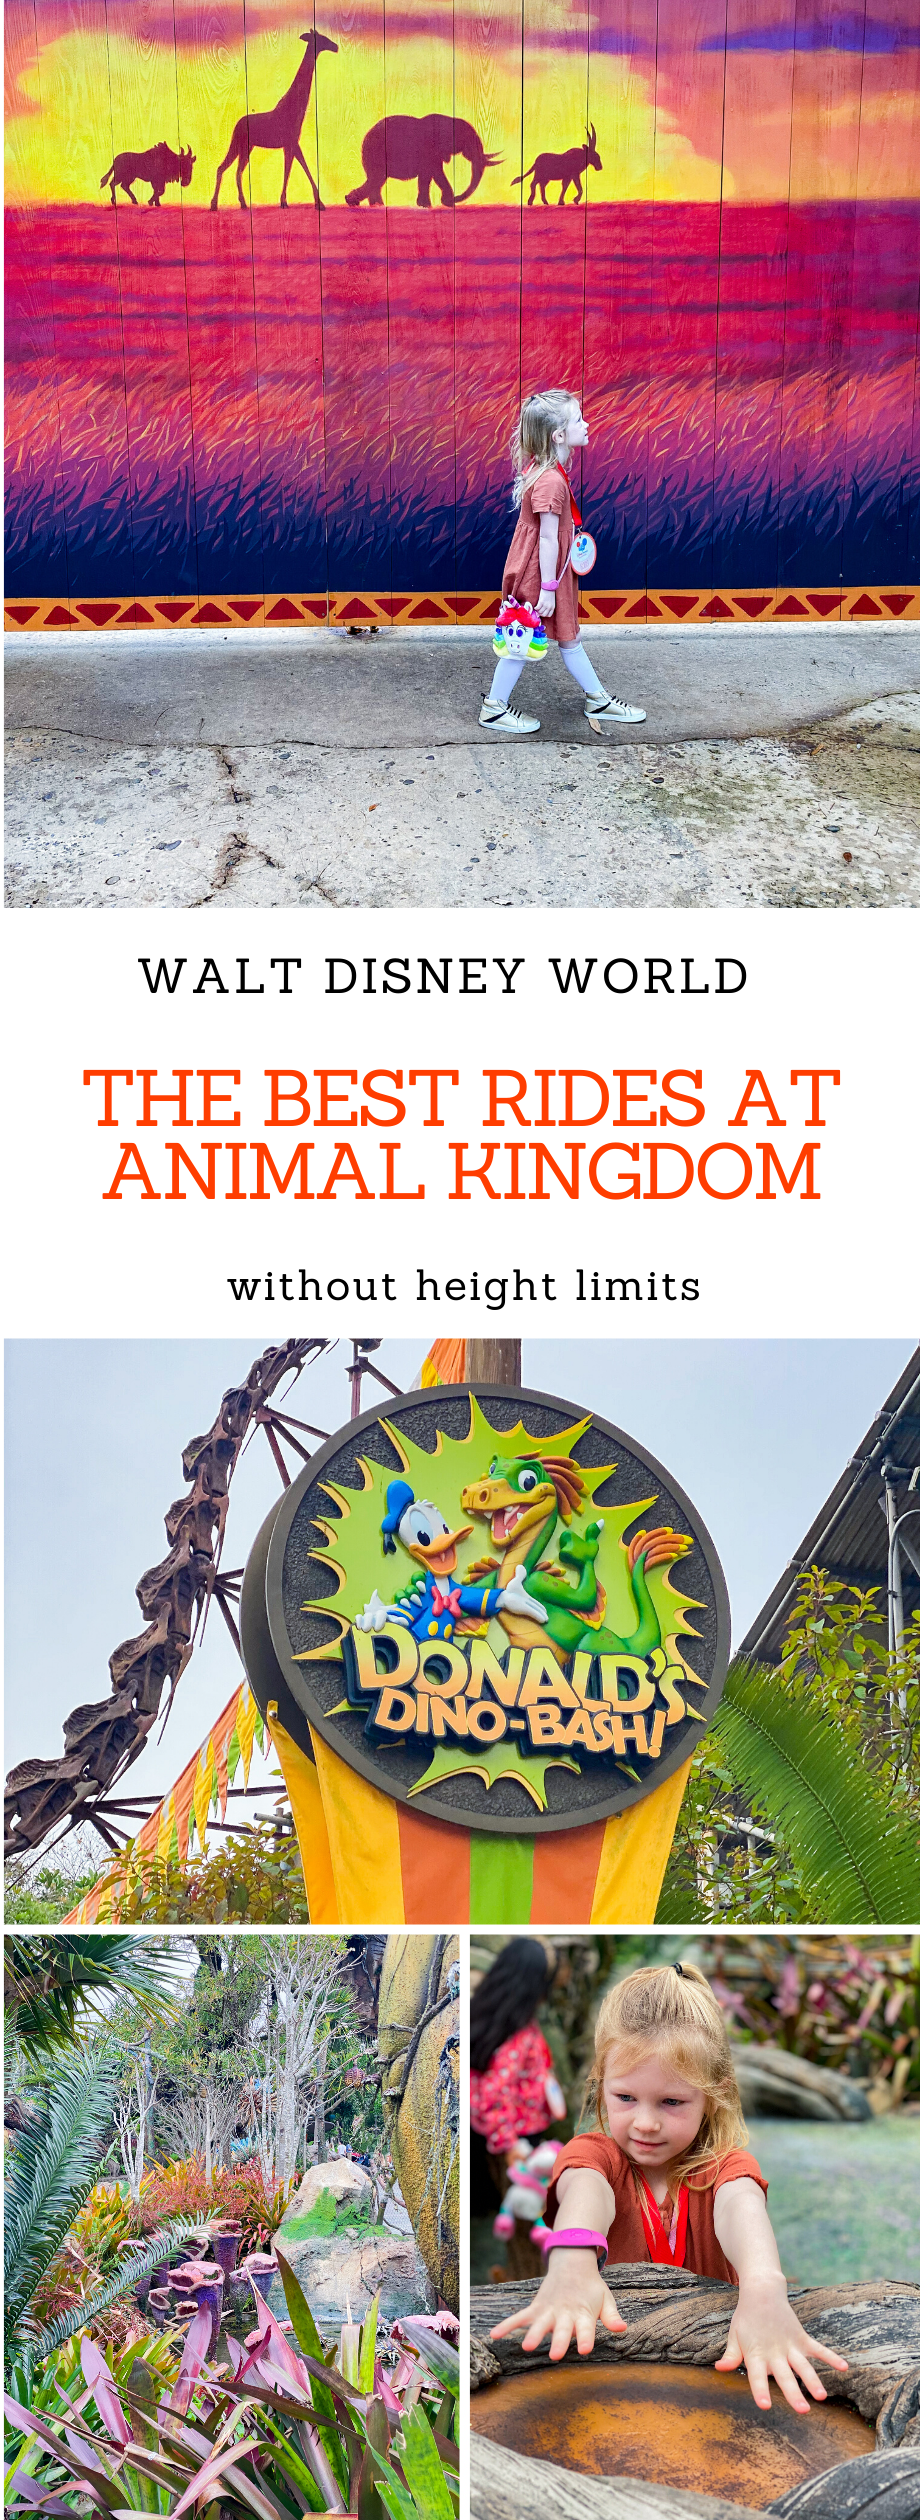 Looking for the Best Rides at Animal Kingdom (and activities) that every member of the family can participate in? These are your best options with low or no height limits at this Walt Disney World Park!